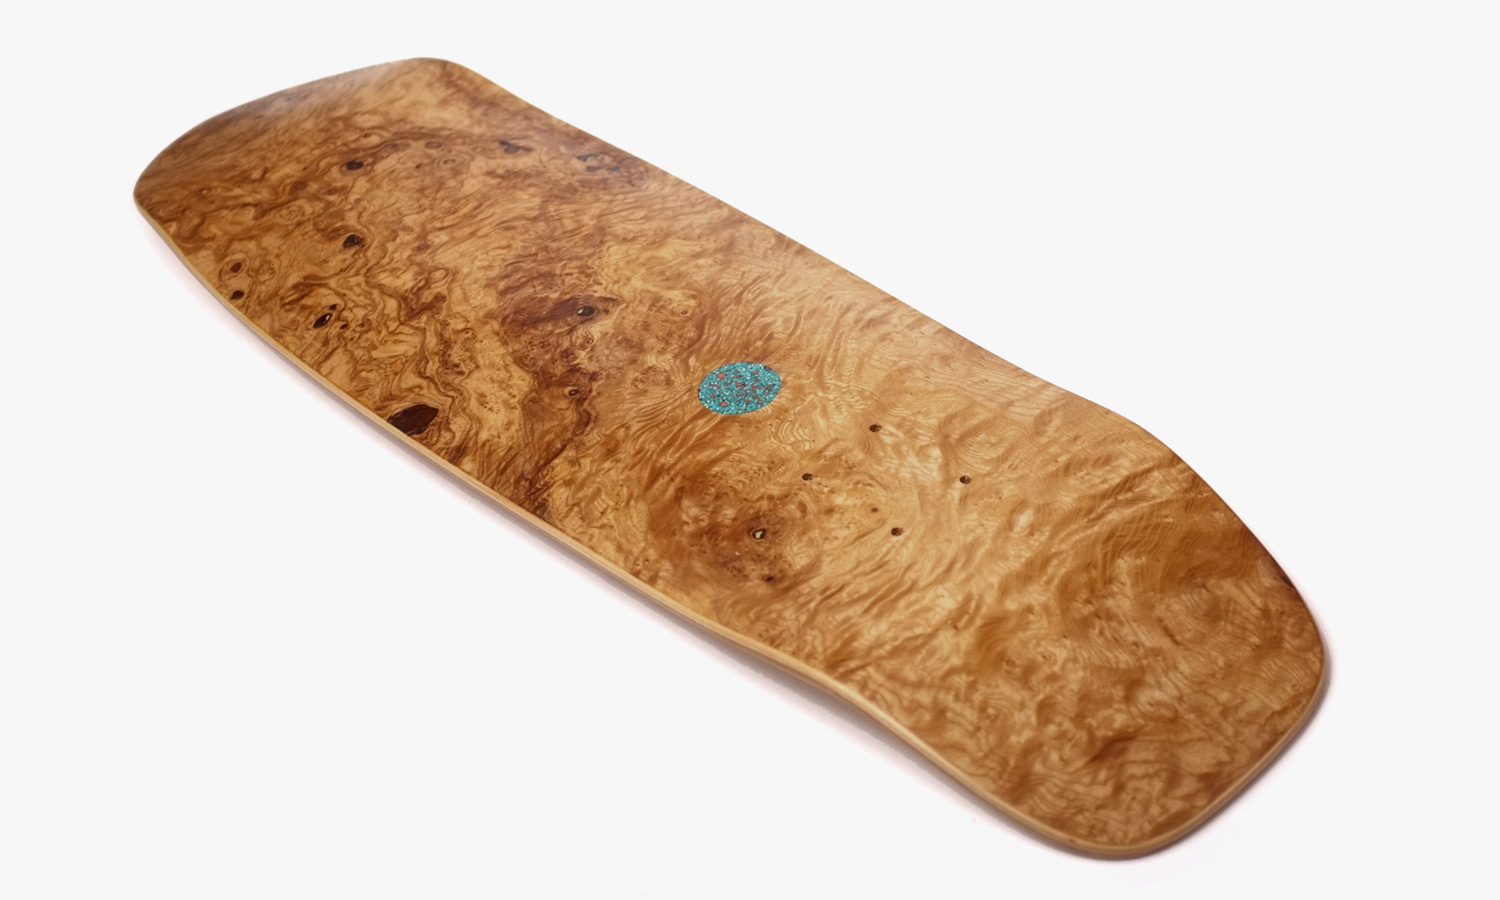 Exotic Wood Skate Decks by Eastern Manner